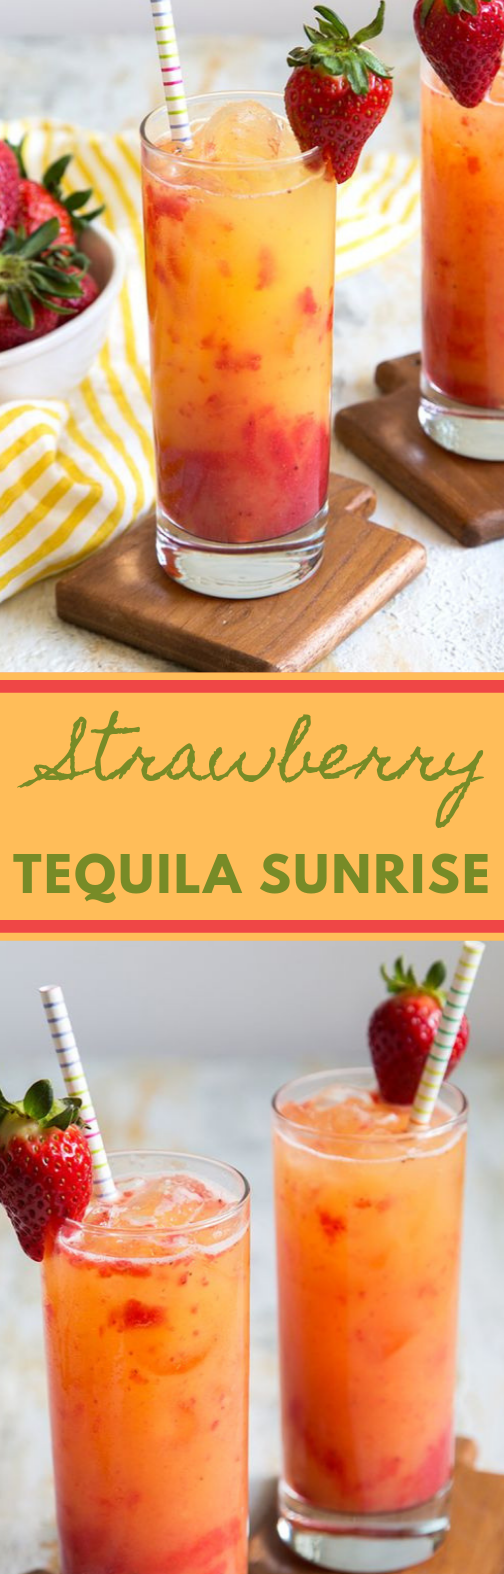 STRAWBERRY TEQUILA SUNRISE #drink #healthydrink #sunrise #strawberry #cocktail